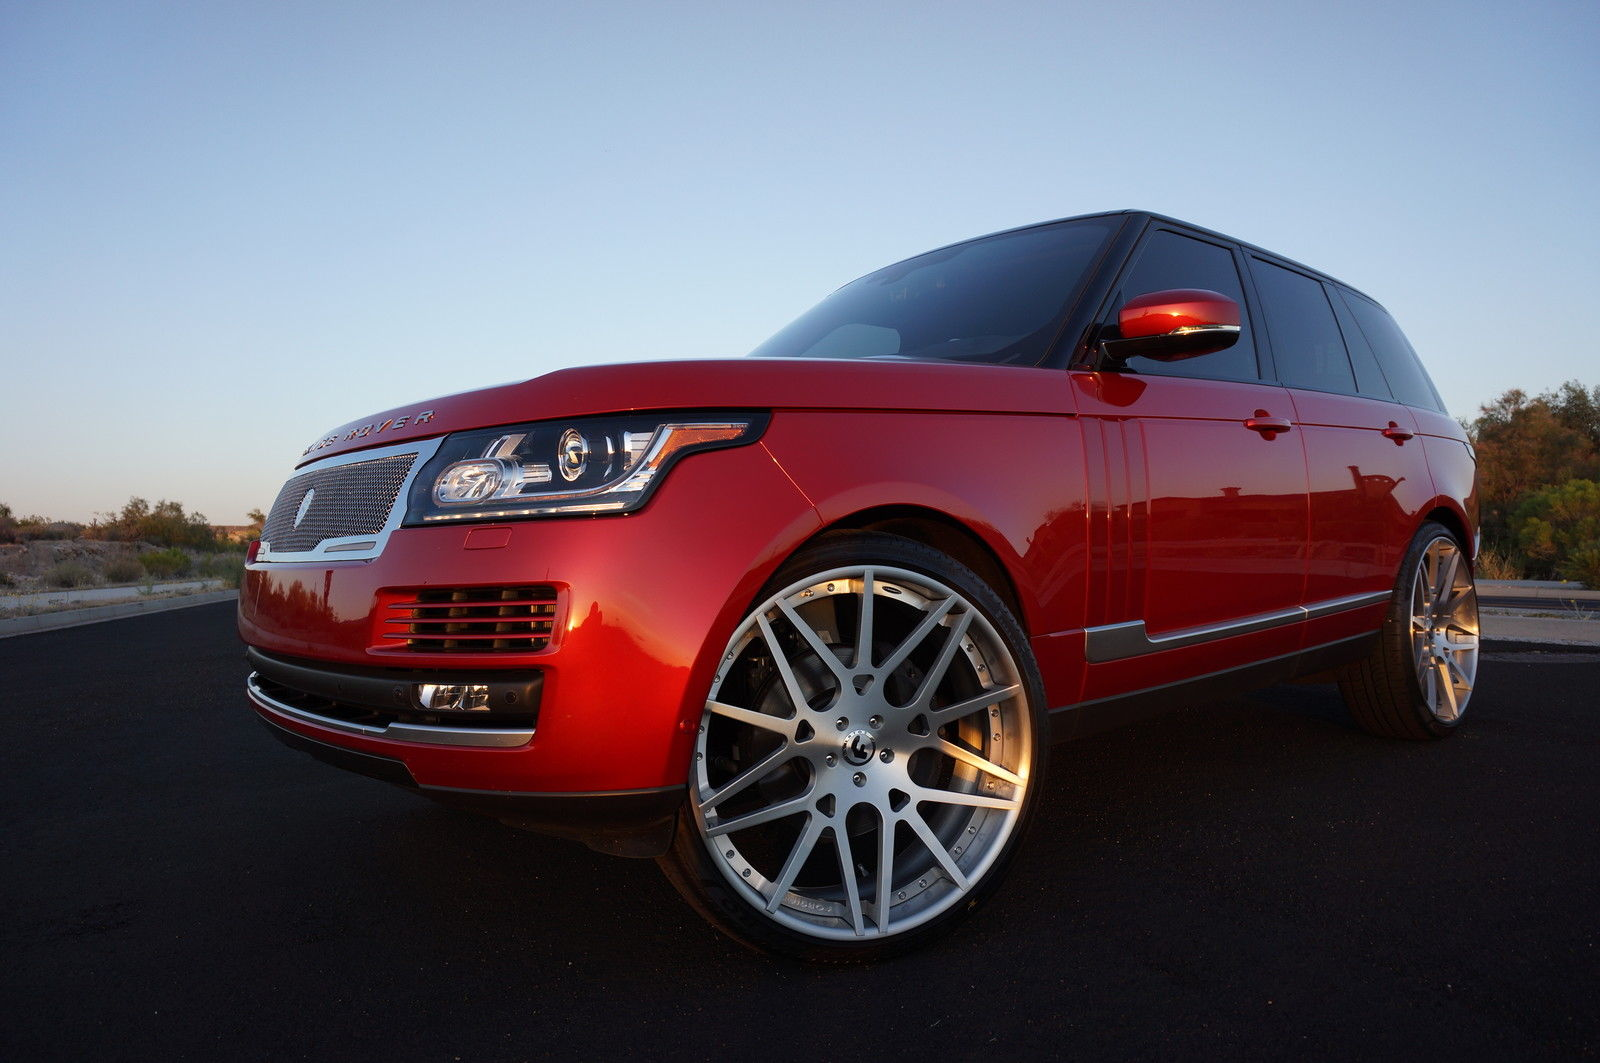 Lowrider Rims And Tires >> 2014 Supercharged Range Rover On 26 Inch Forgiatos | For Sale Friday - Rides Magazine